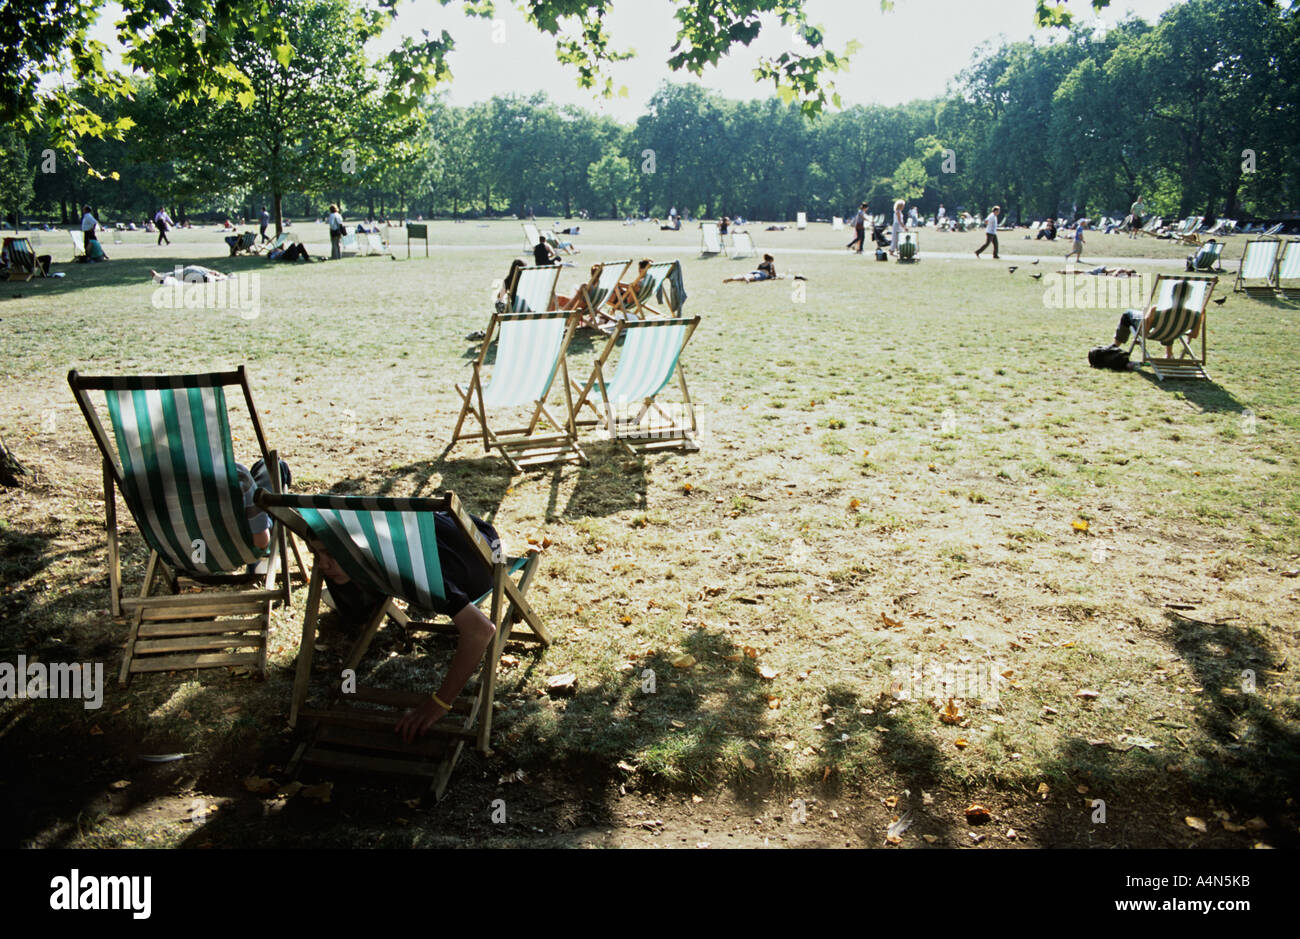 Hot summer's day in Green Park, Westminster, London, UK - Stock Image